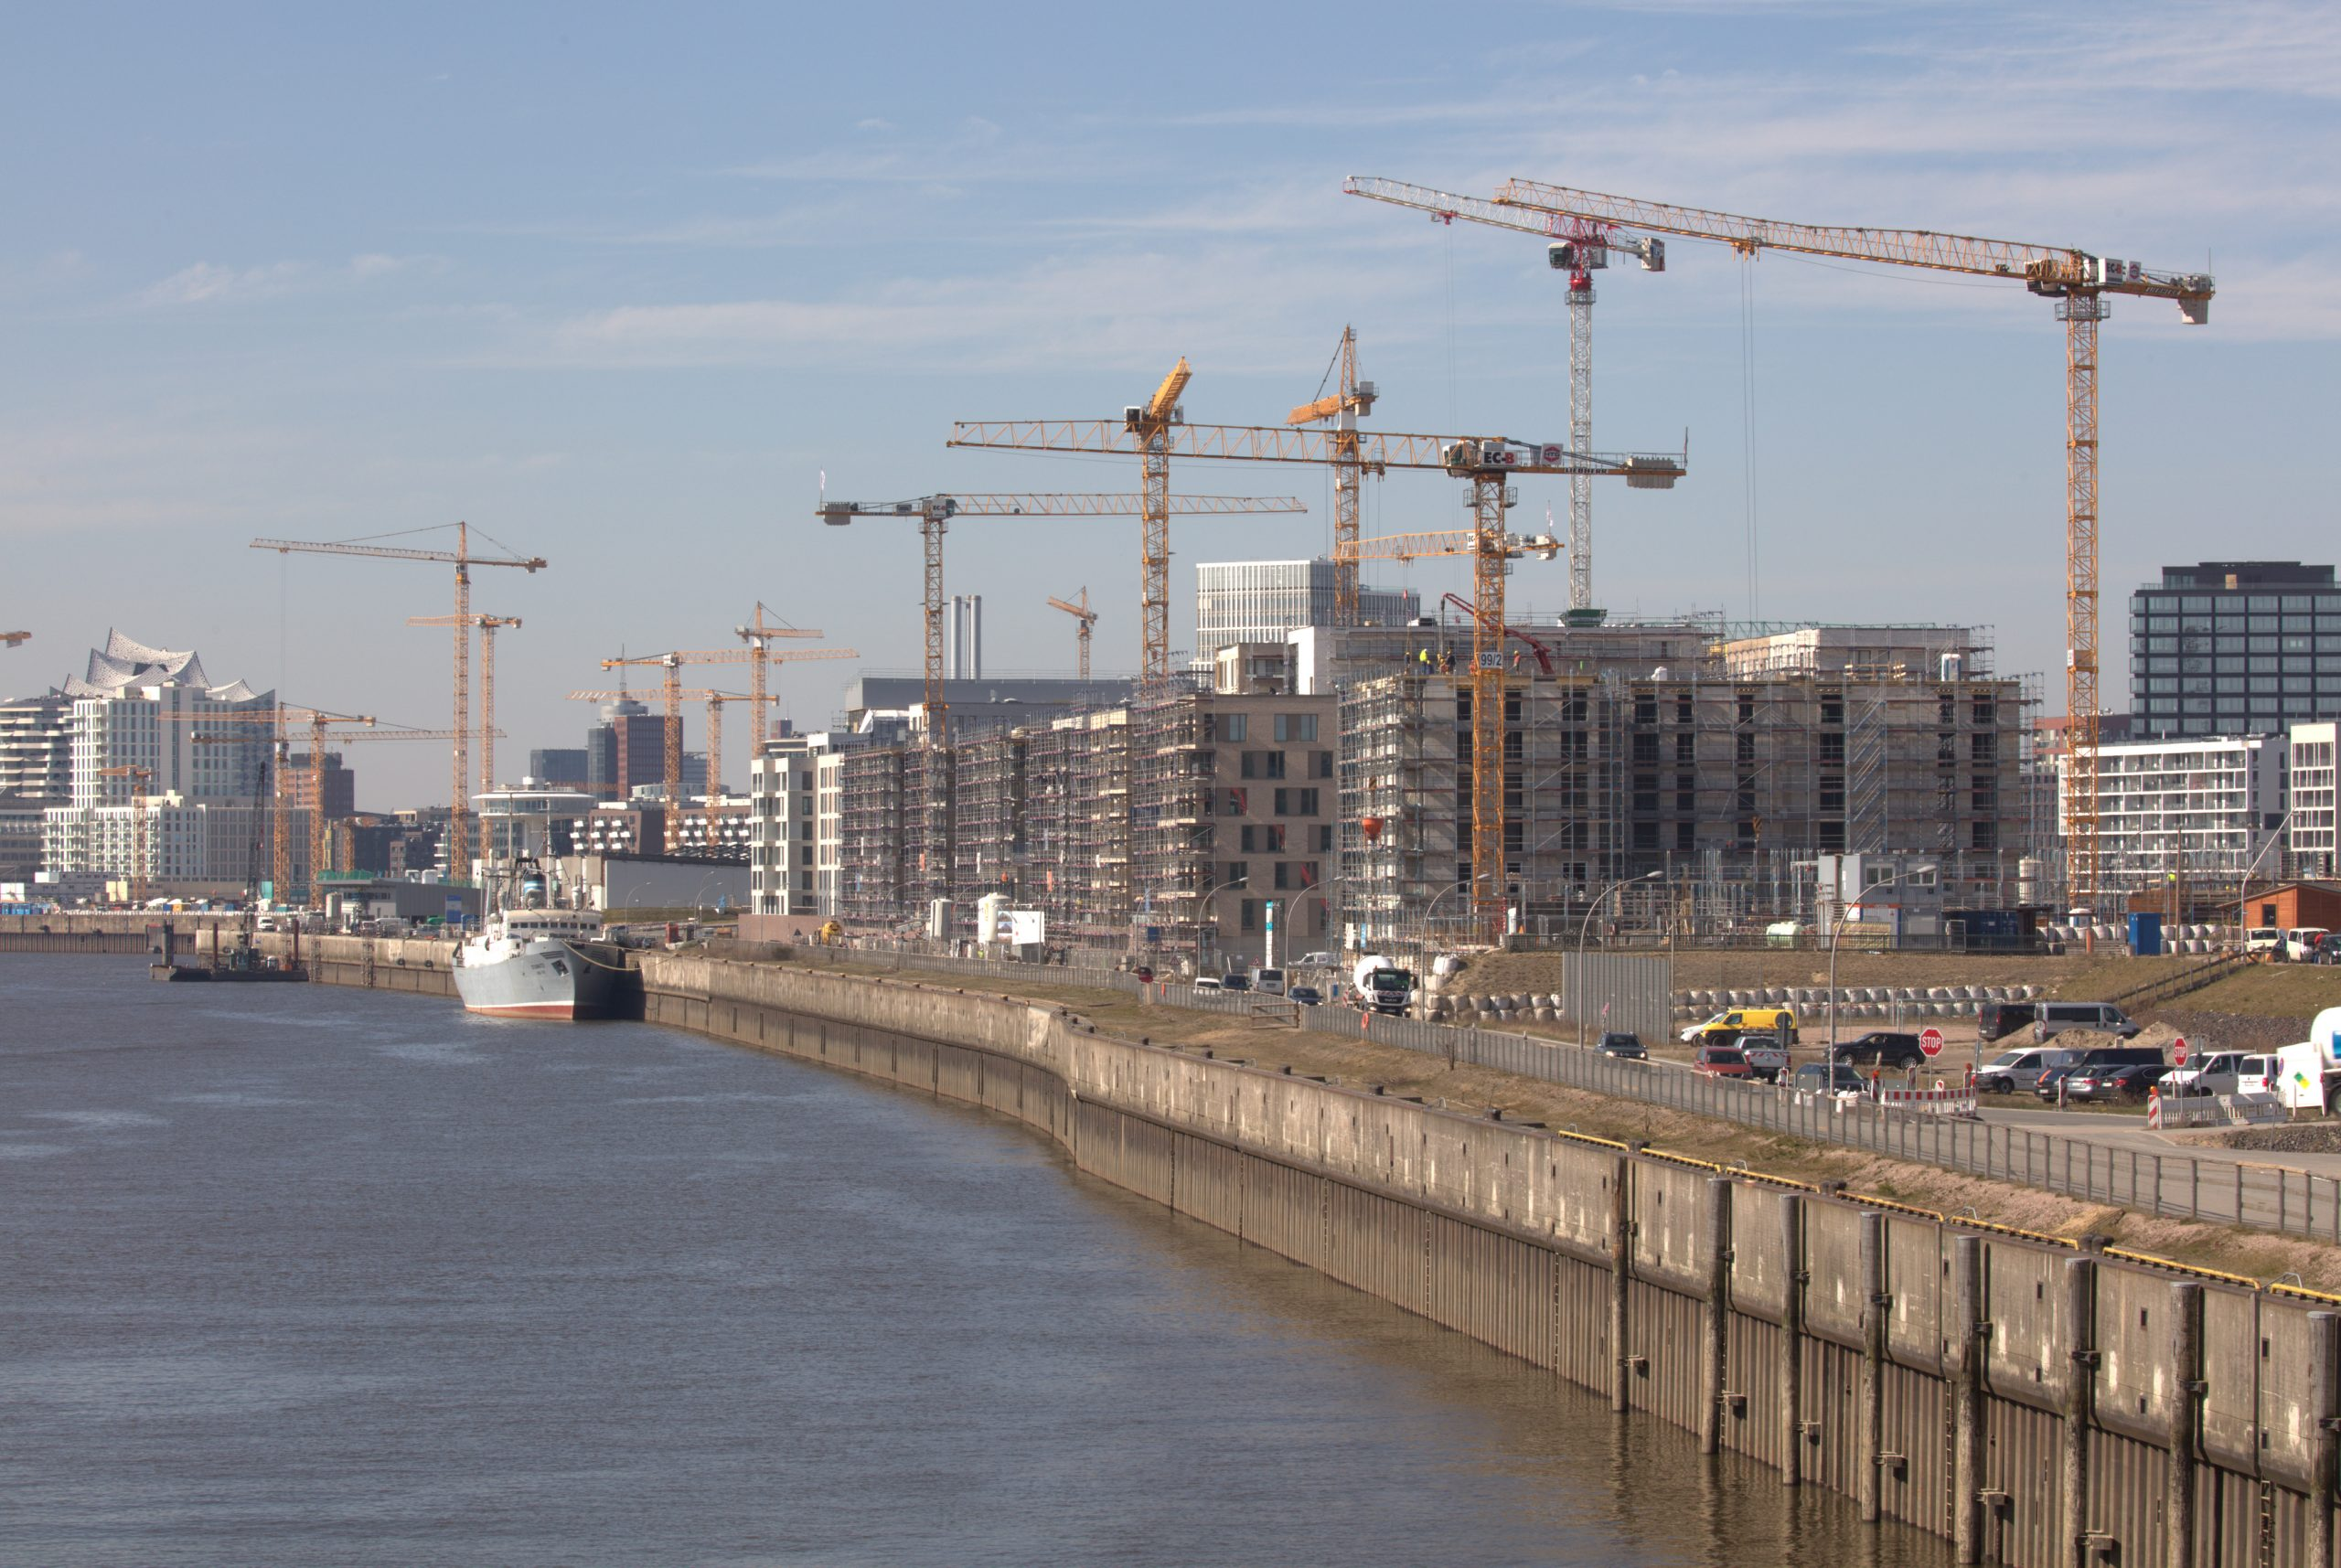 Top-class logistics: 25 Liebherr tower cranes at work on the Überseequartier district in Hamburg's HafenCity area